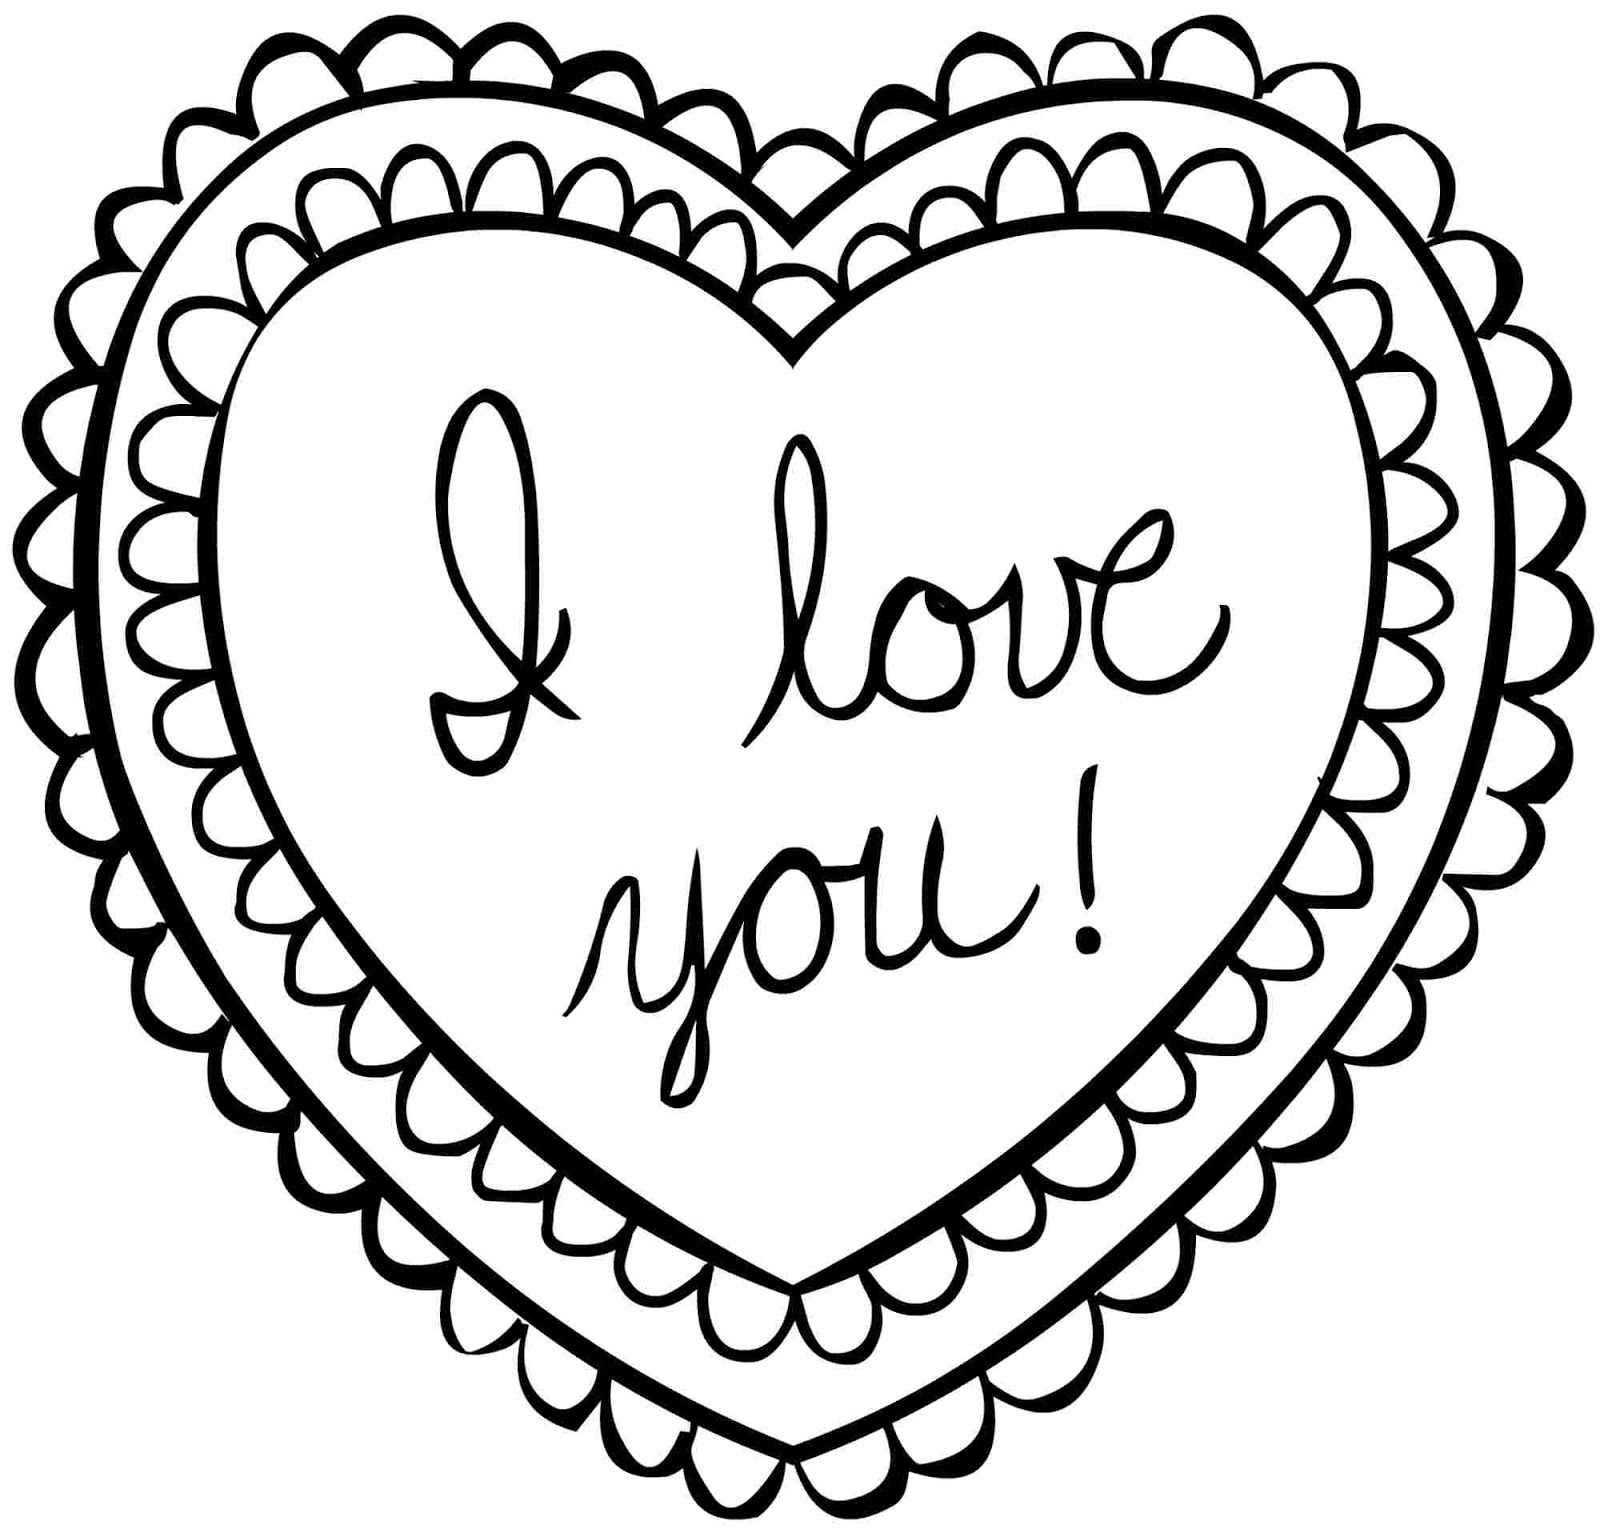 Free printable coloring pages for valentines day - Valentine Coloring Pages Heart Shaped